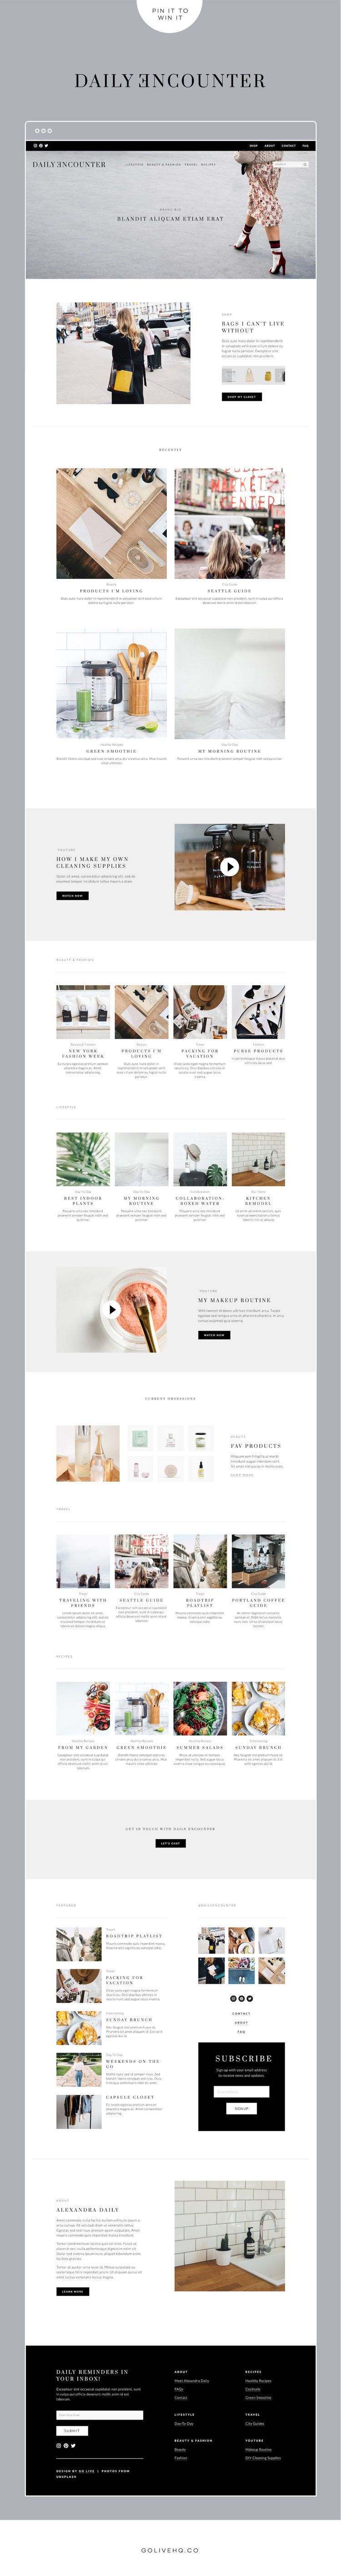 Modern,+Minimal+Squarespace+Blogger+Template+For+Squarespace+_+By+GoLive.jpg